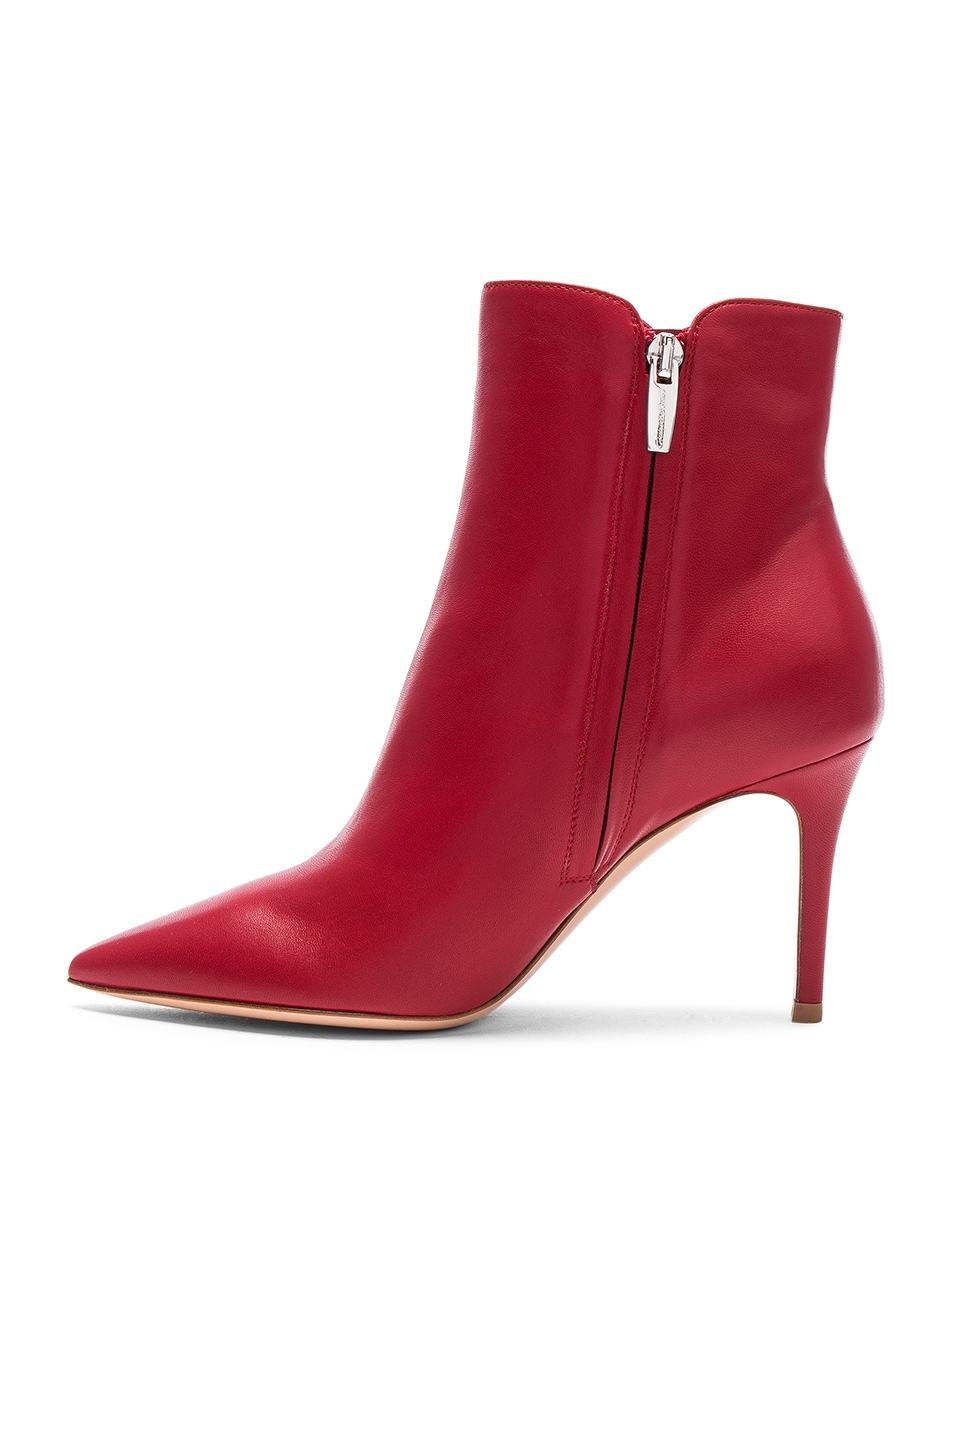 Image 5 of Gianvito Rossi Nappa Leather Levy Ankle Boots in Tabasco Red